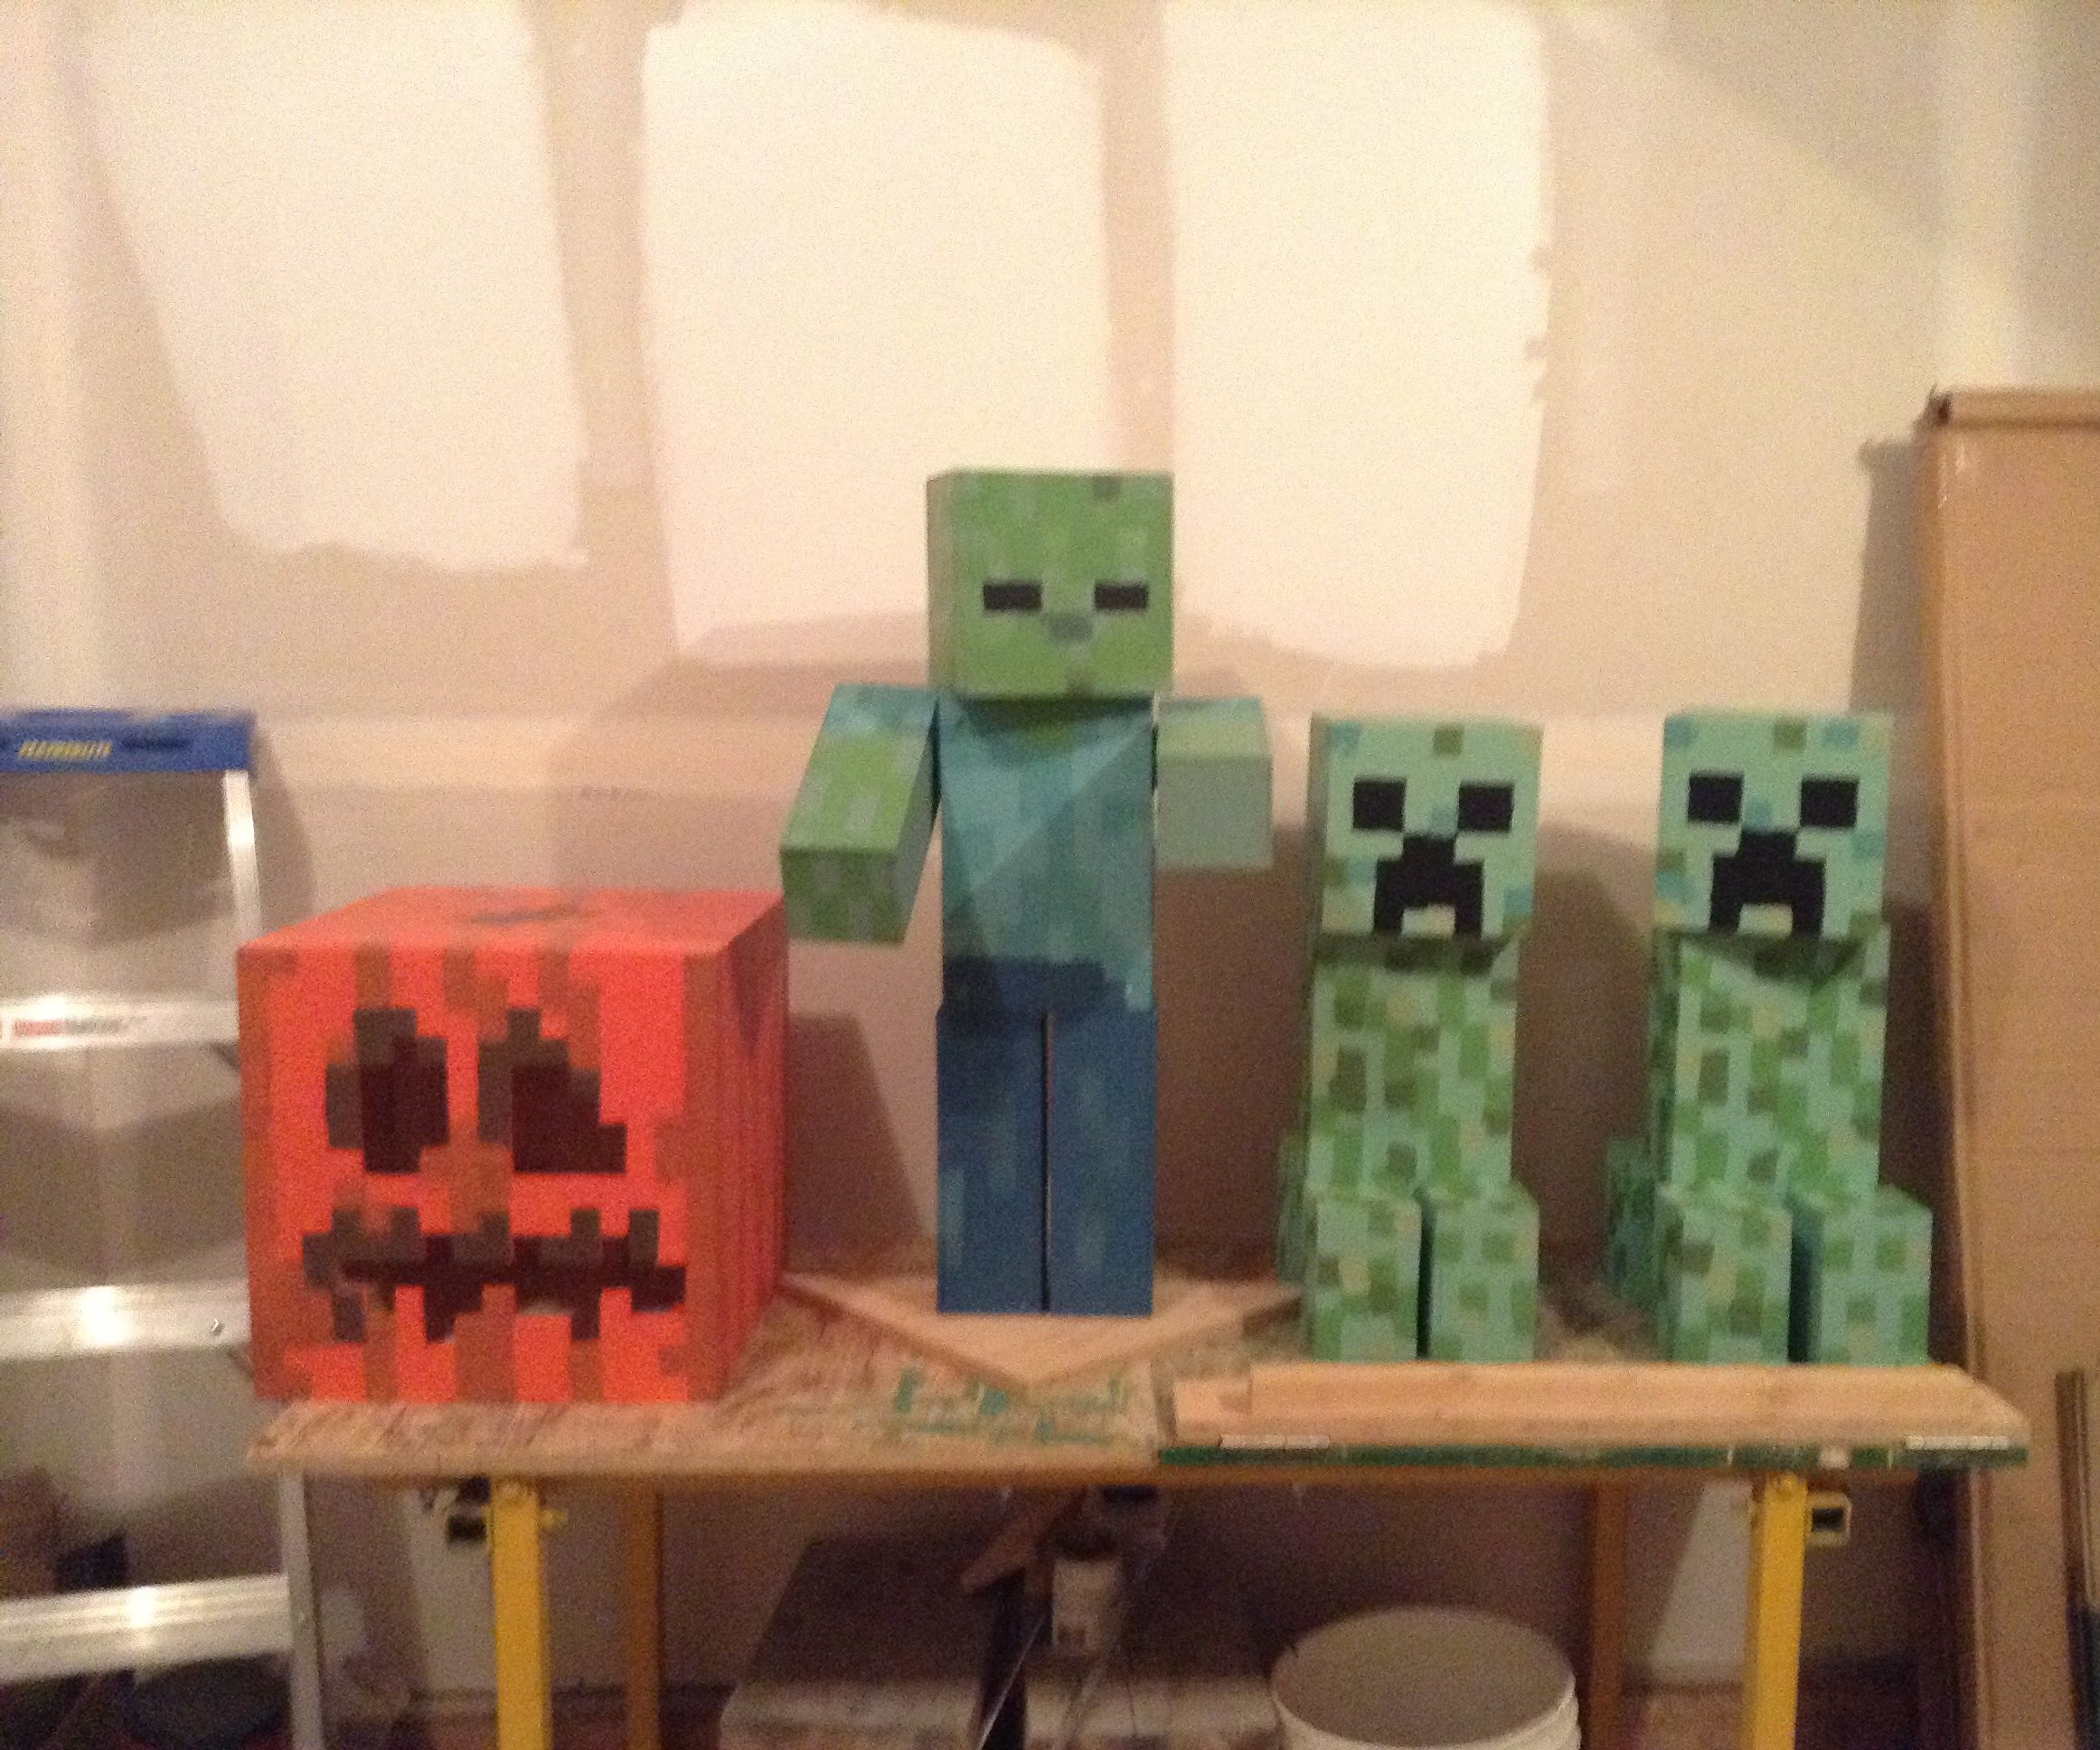 Plywood Minecraft Figures for Haloween (or whenever!)